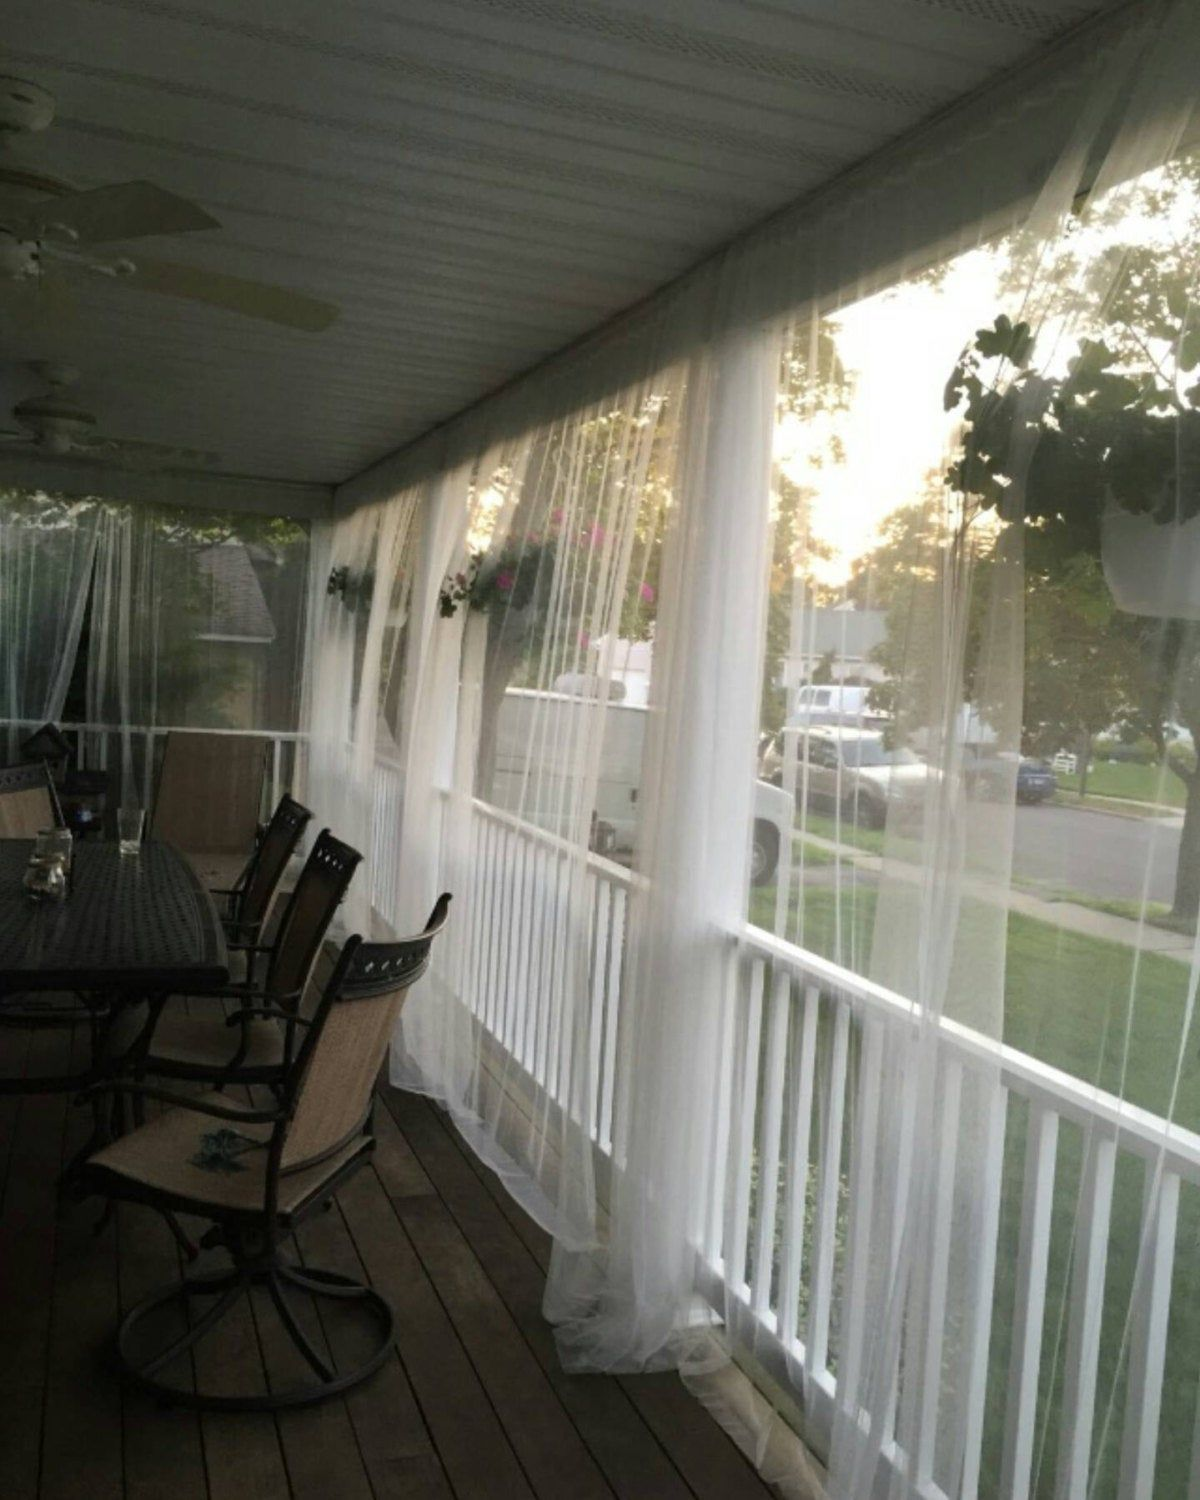 One White Mosquito Netting Curtain for Patio or Bedroom